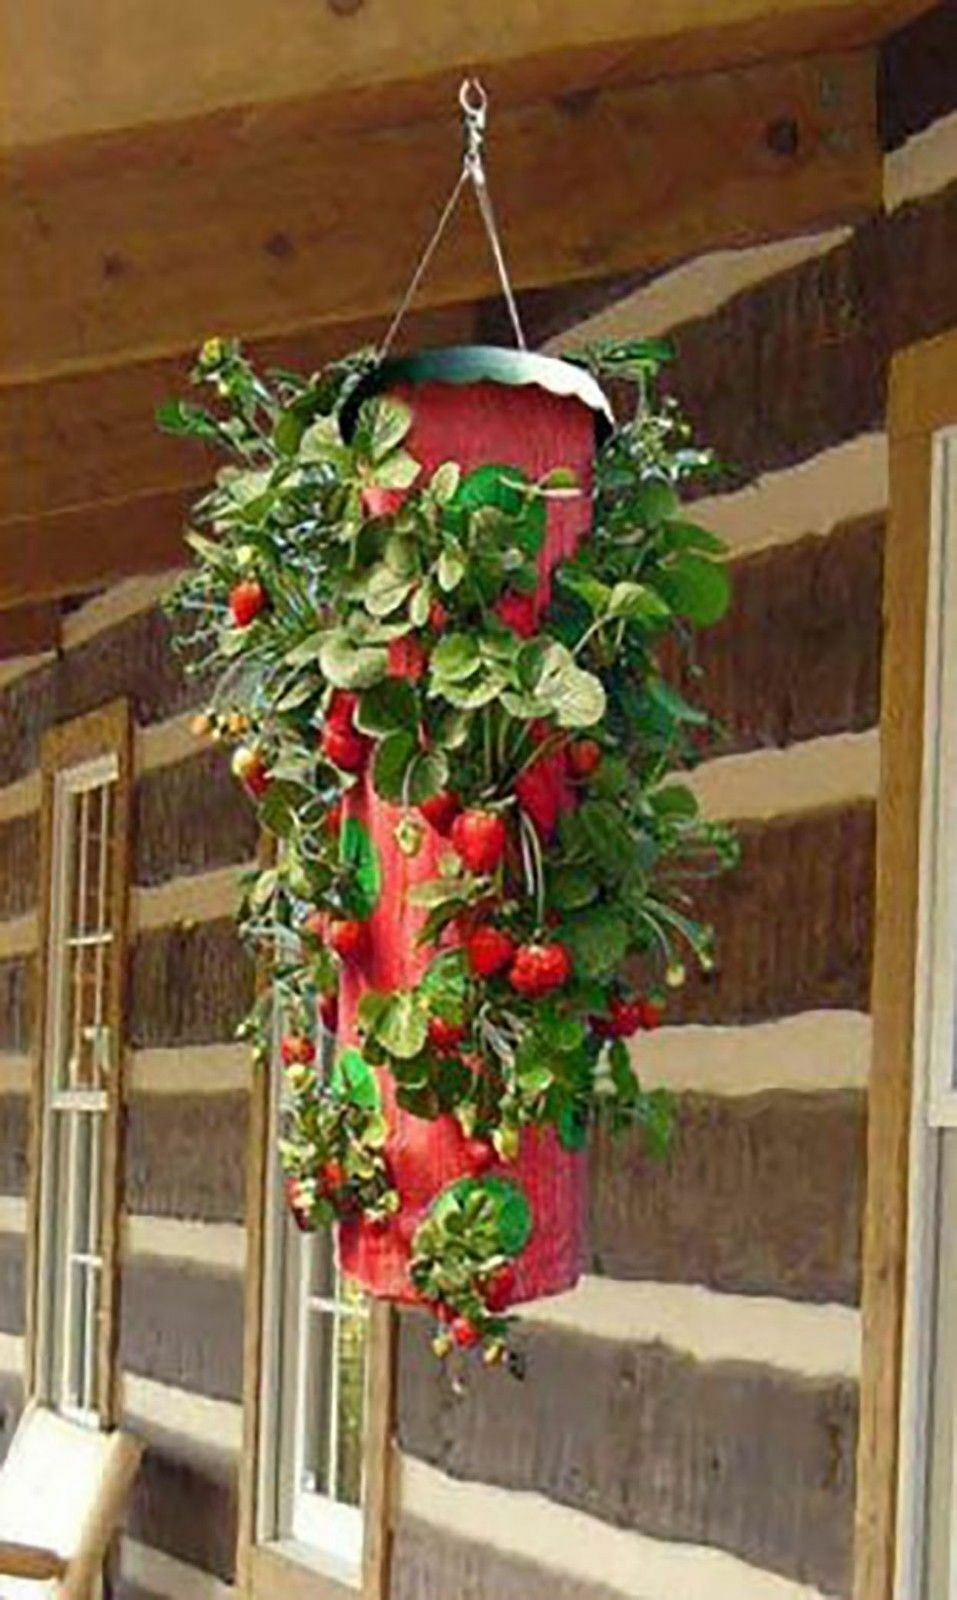 Topsy Turvy Strawberry Round Upside Down Planter - As Seen On TV Grows 15 qts